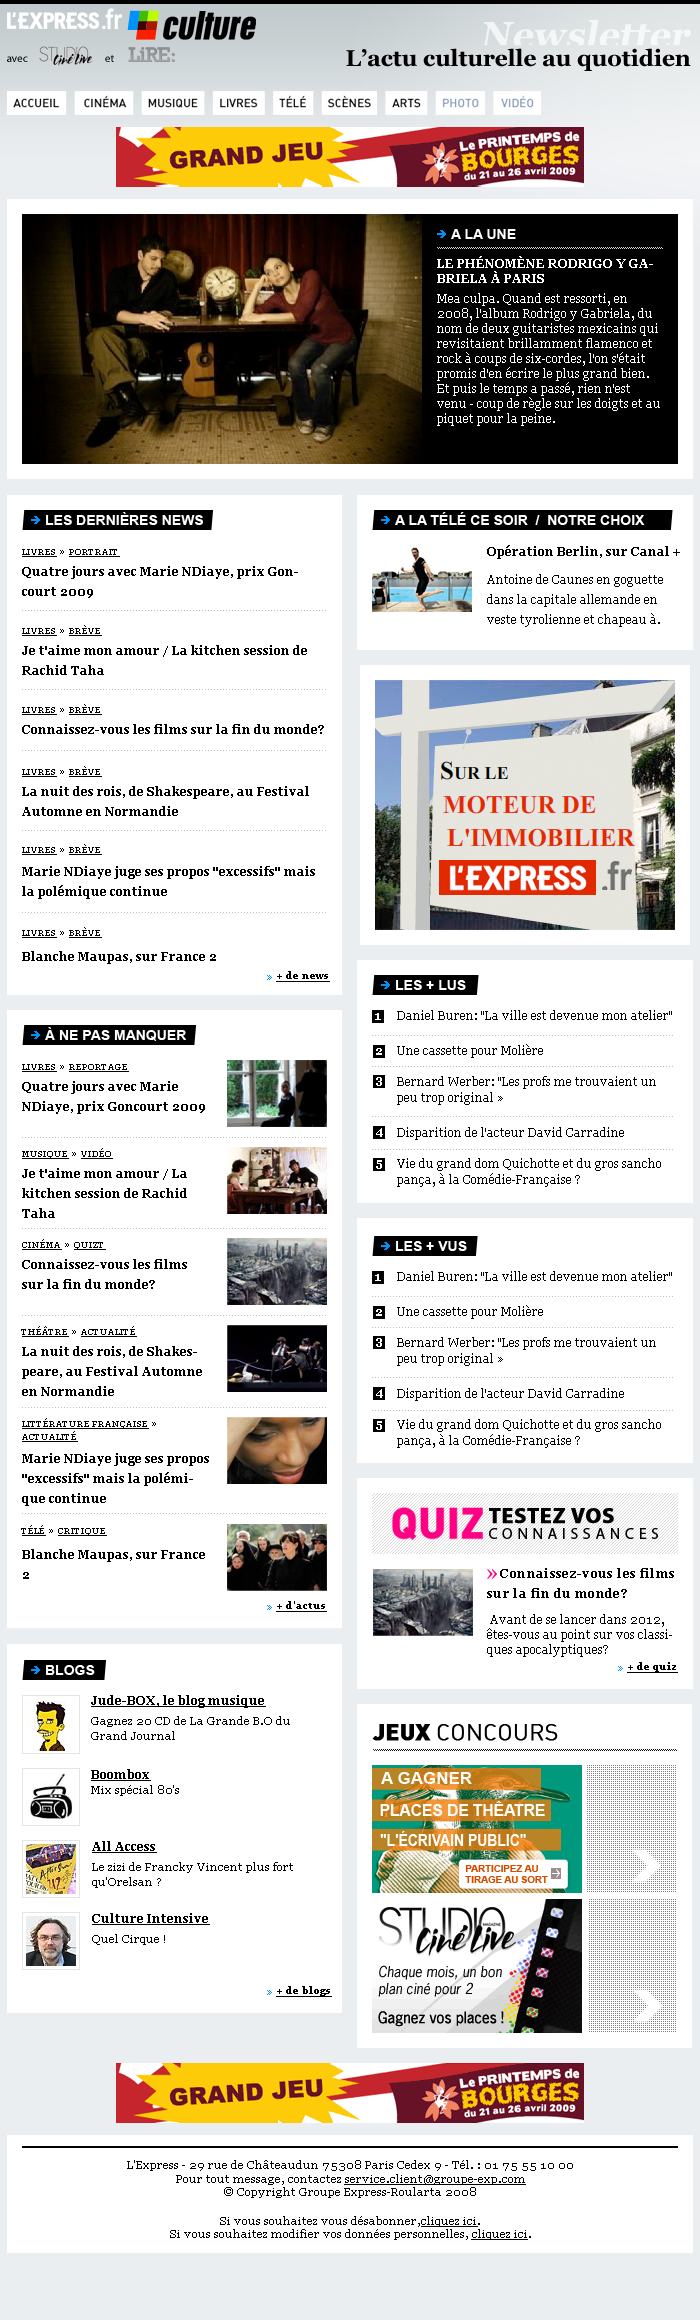 Maquette de newsletter quotidienne pour lexpress culture